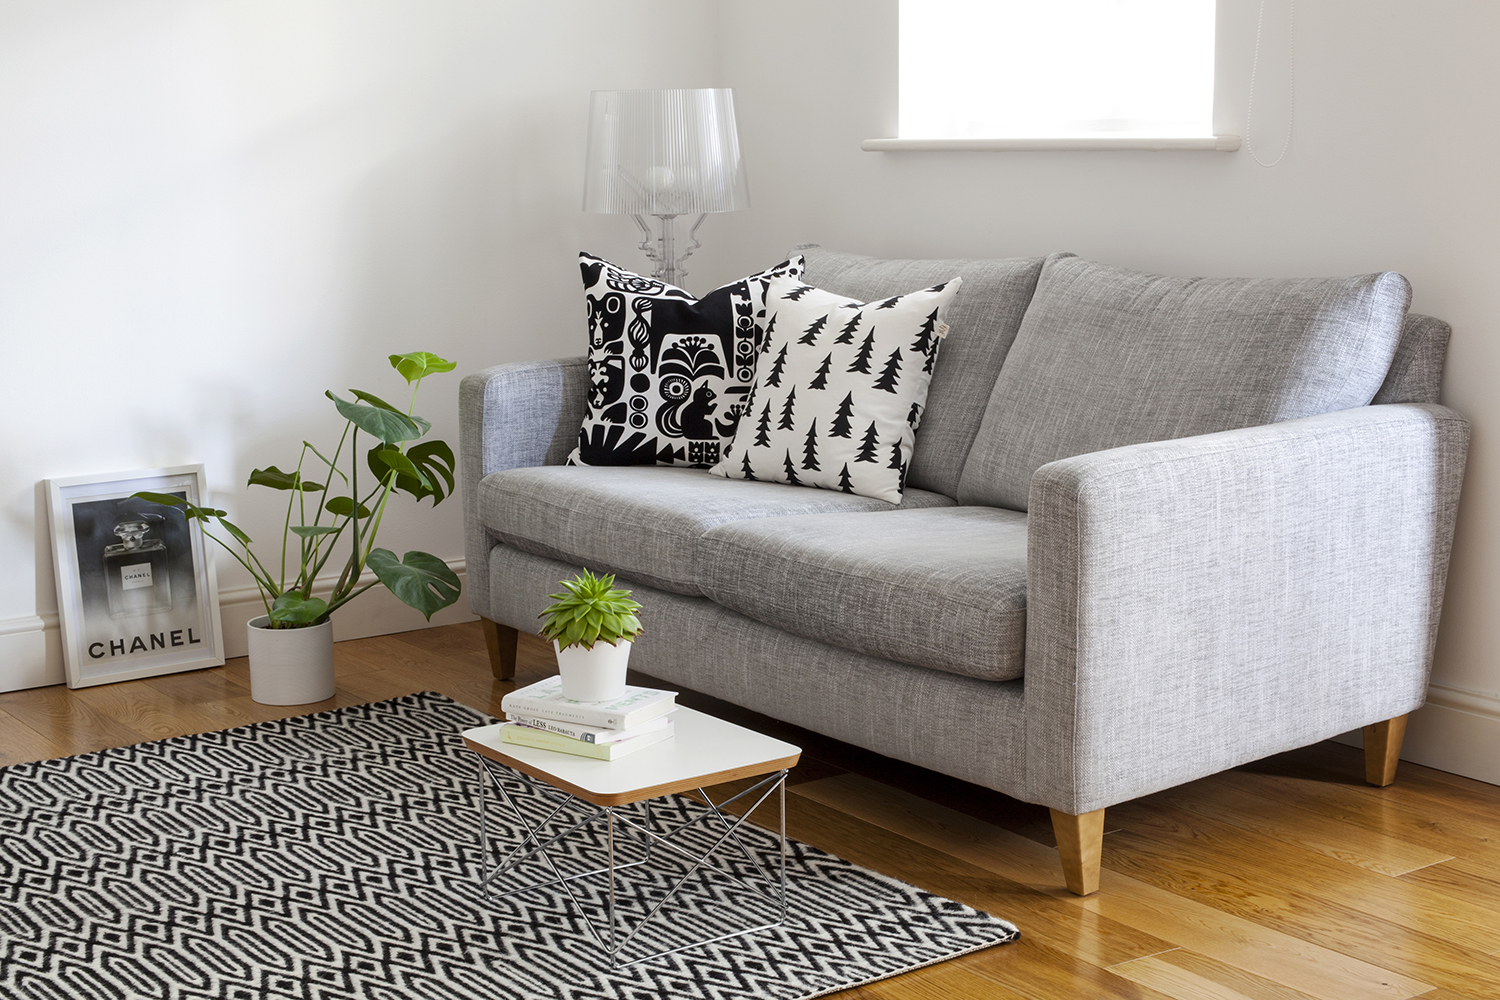 Decluttering My Home: My Journey to Minimalism | natashadenness.co.uk (photo of a living room with a grey sofa)